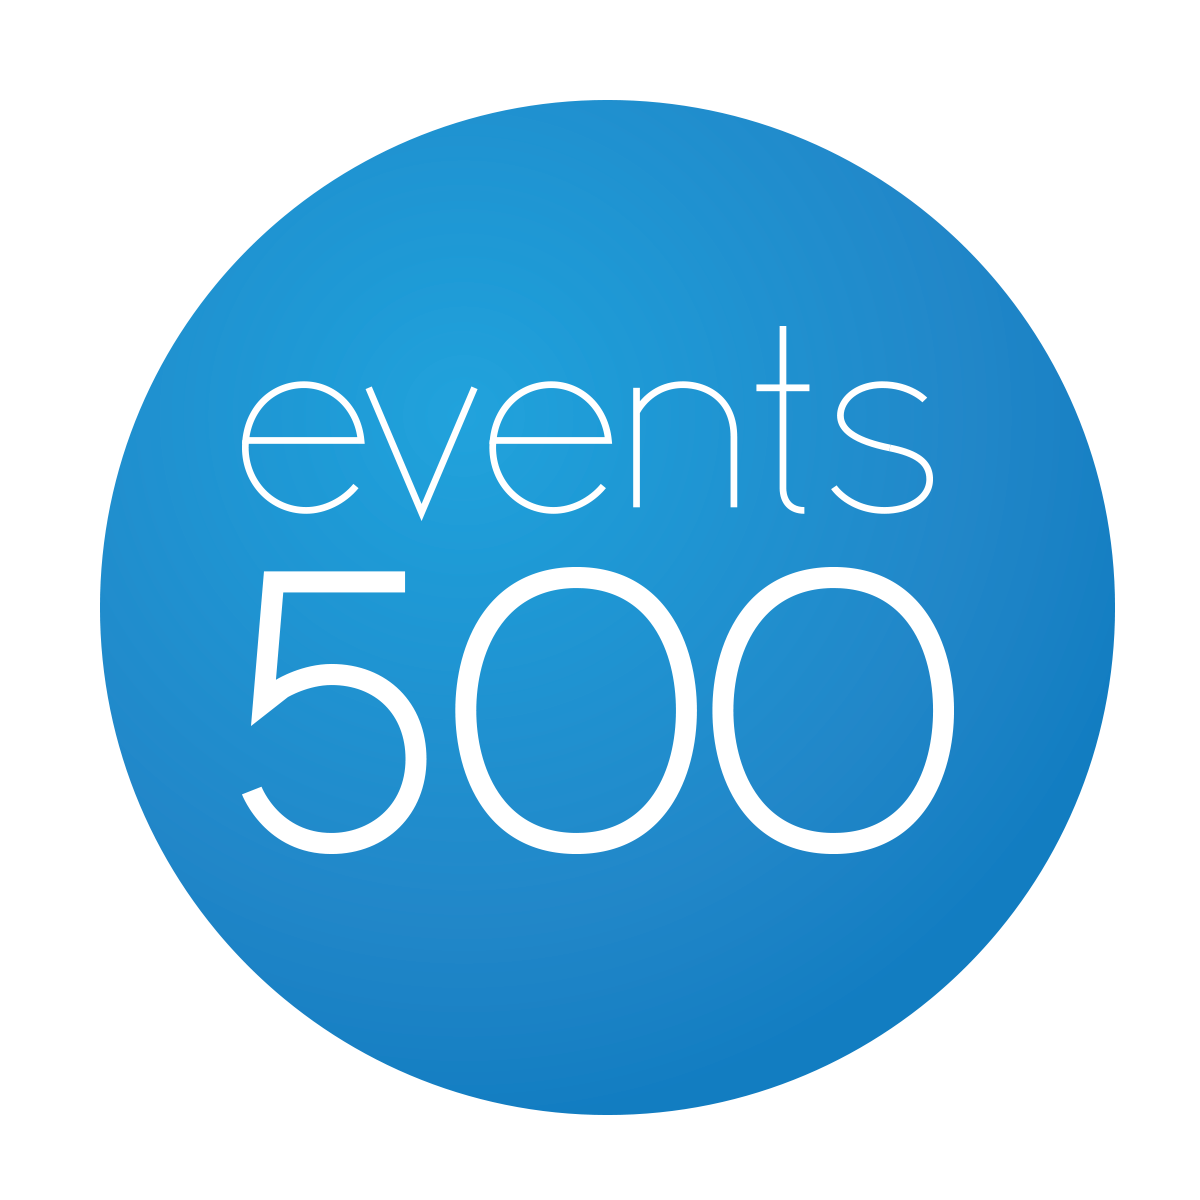 events500 logo